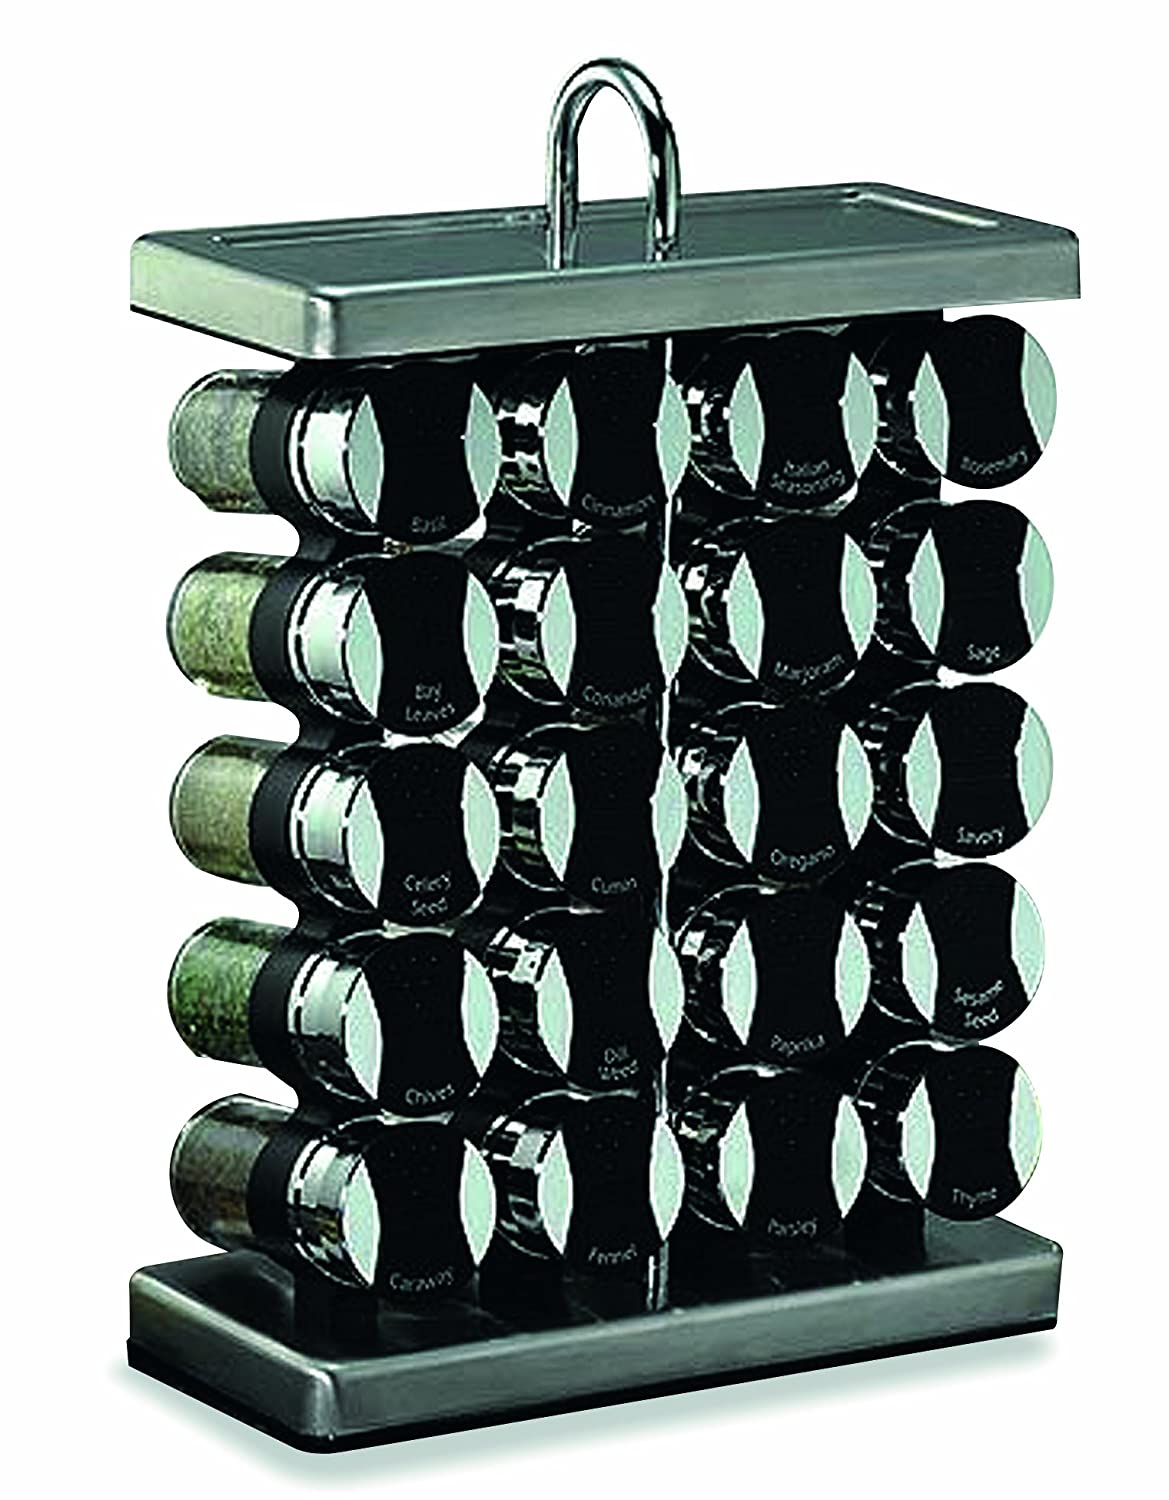 stainless steel spice racks with spices included